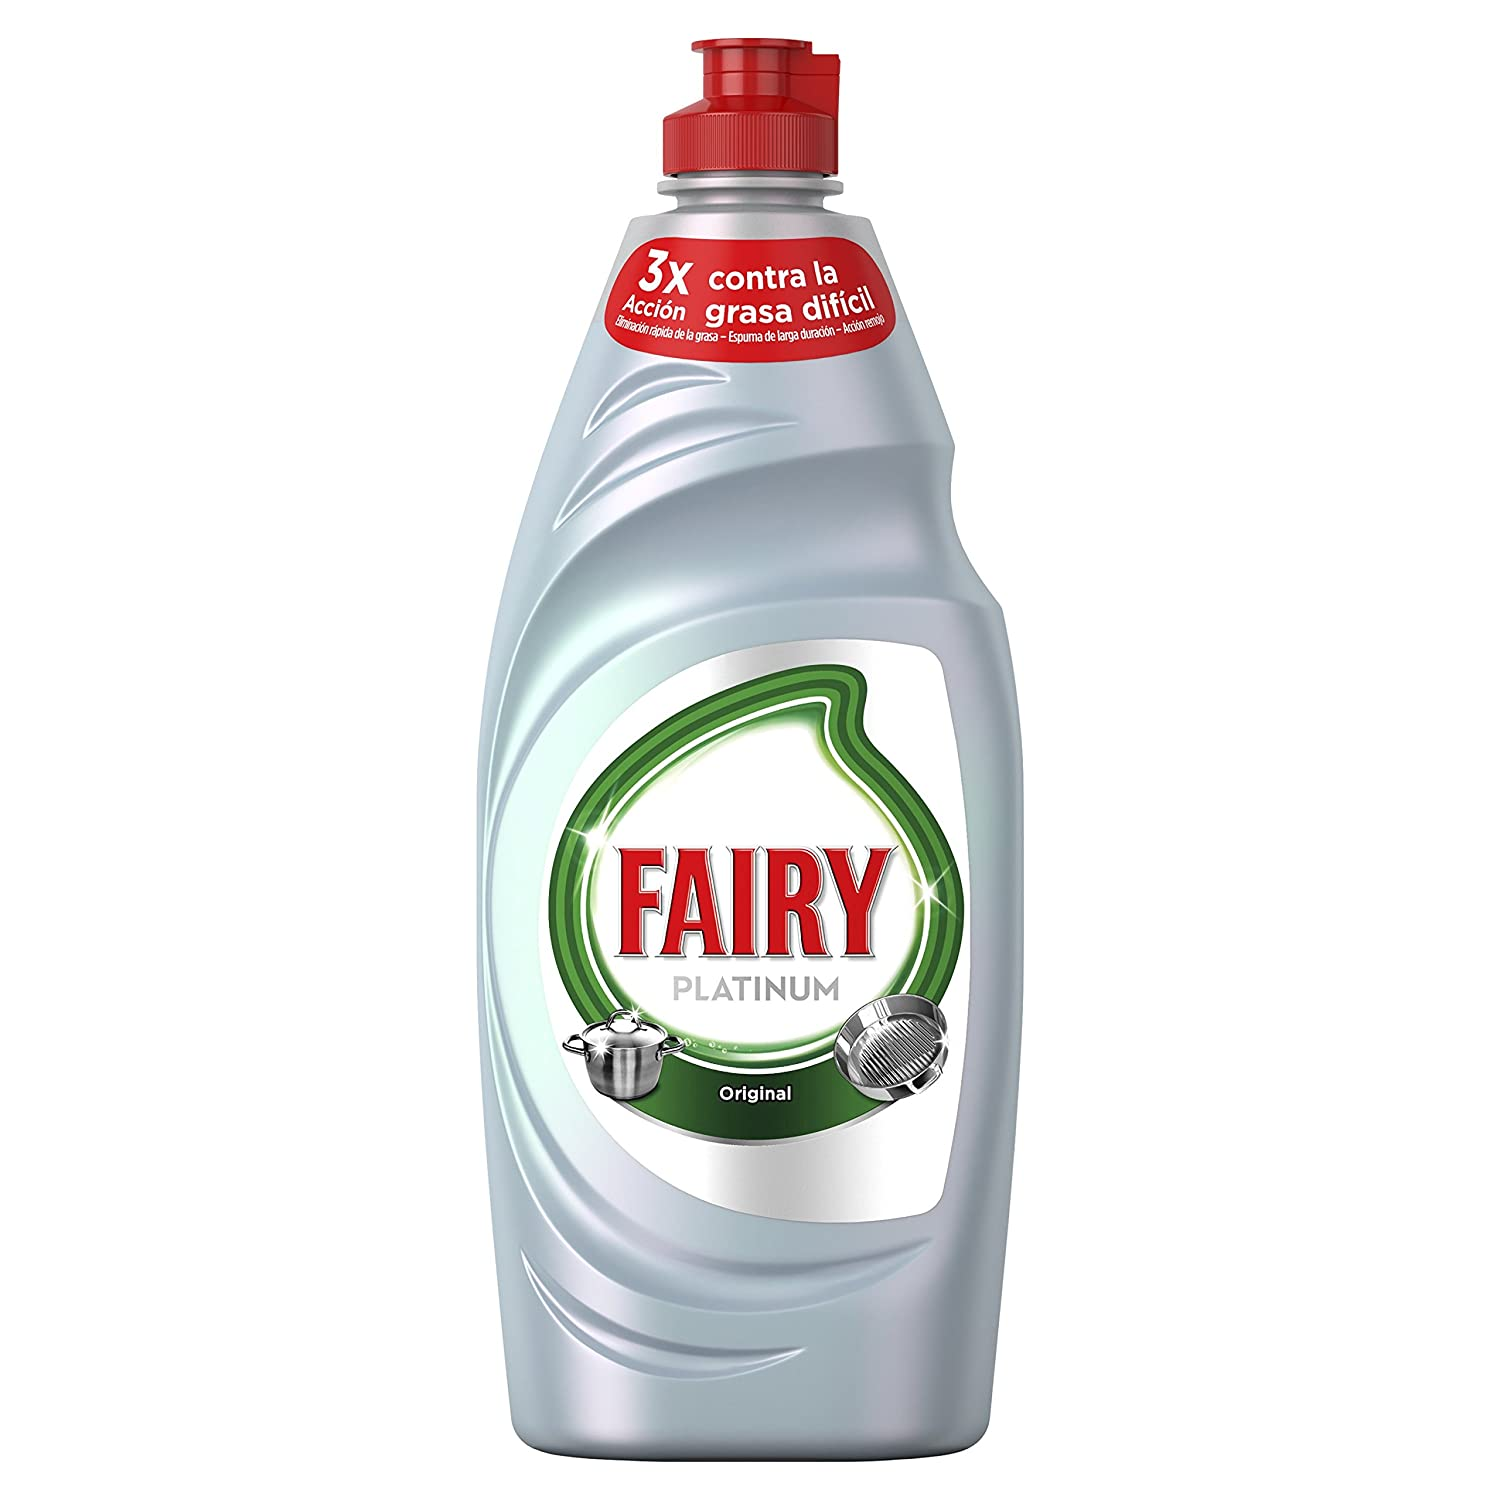 Fairy Platinum Original Líquido Lavavajillas - 500 ml: Amazon.es: Amazon Pantry